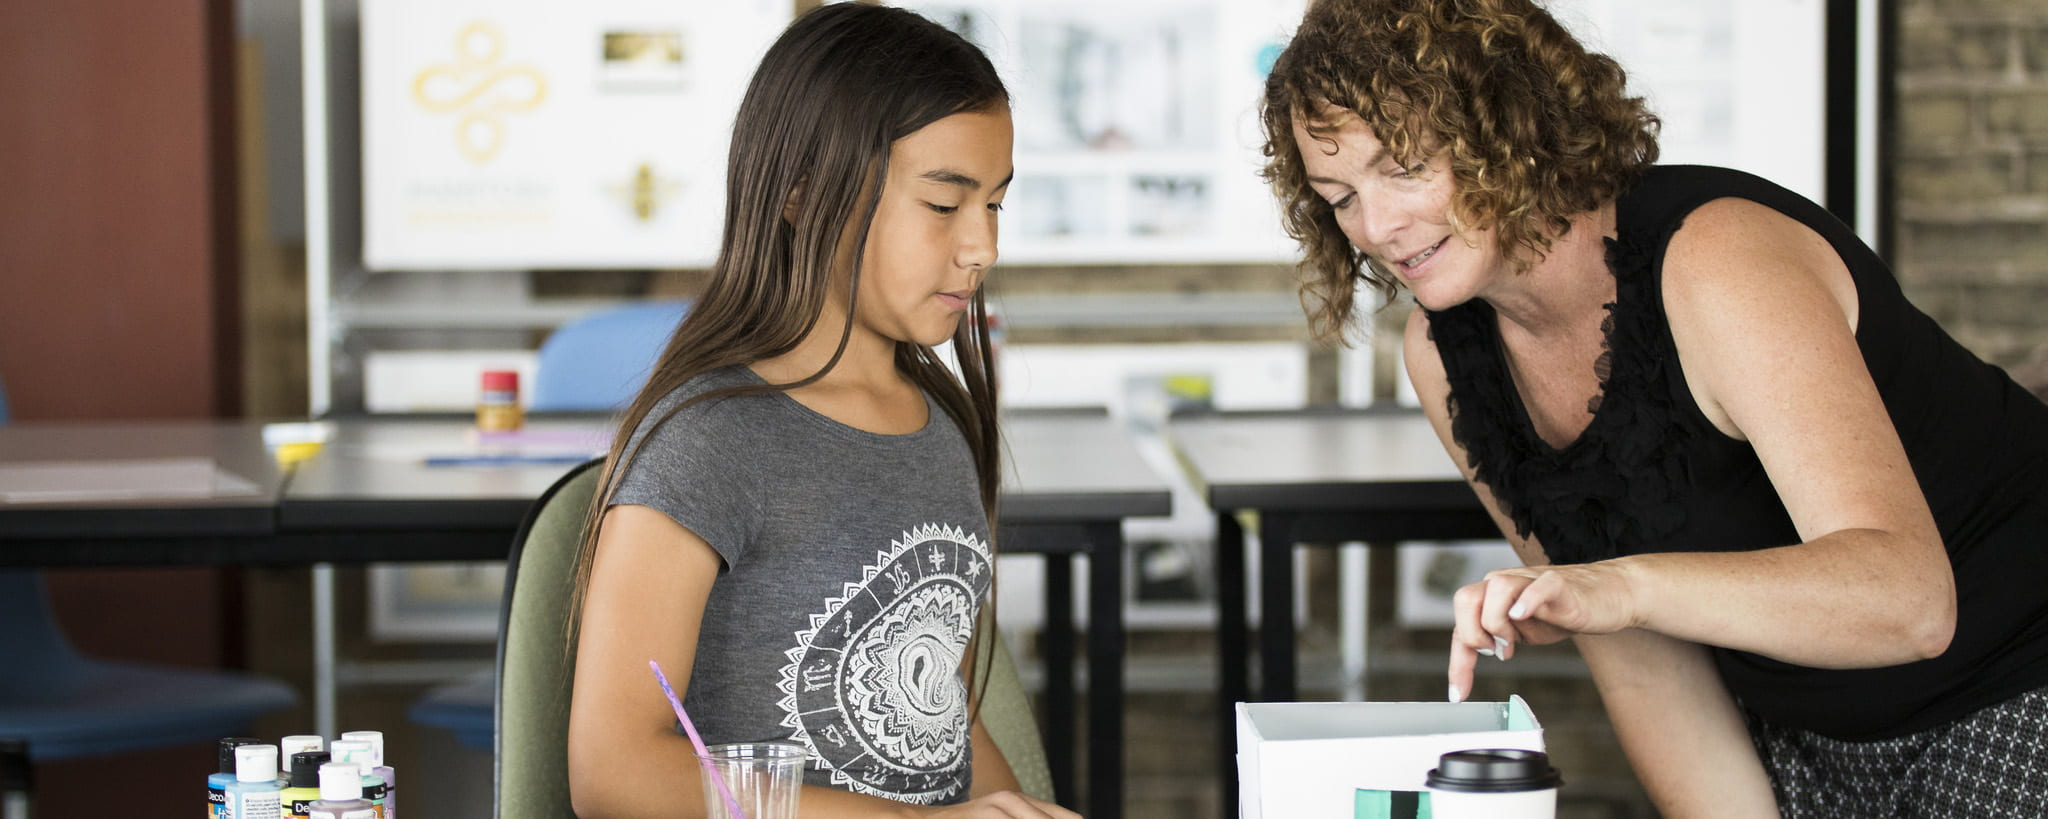 A summer camp for hands-on design skills and fun for your child